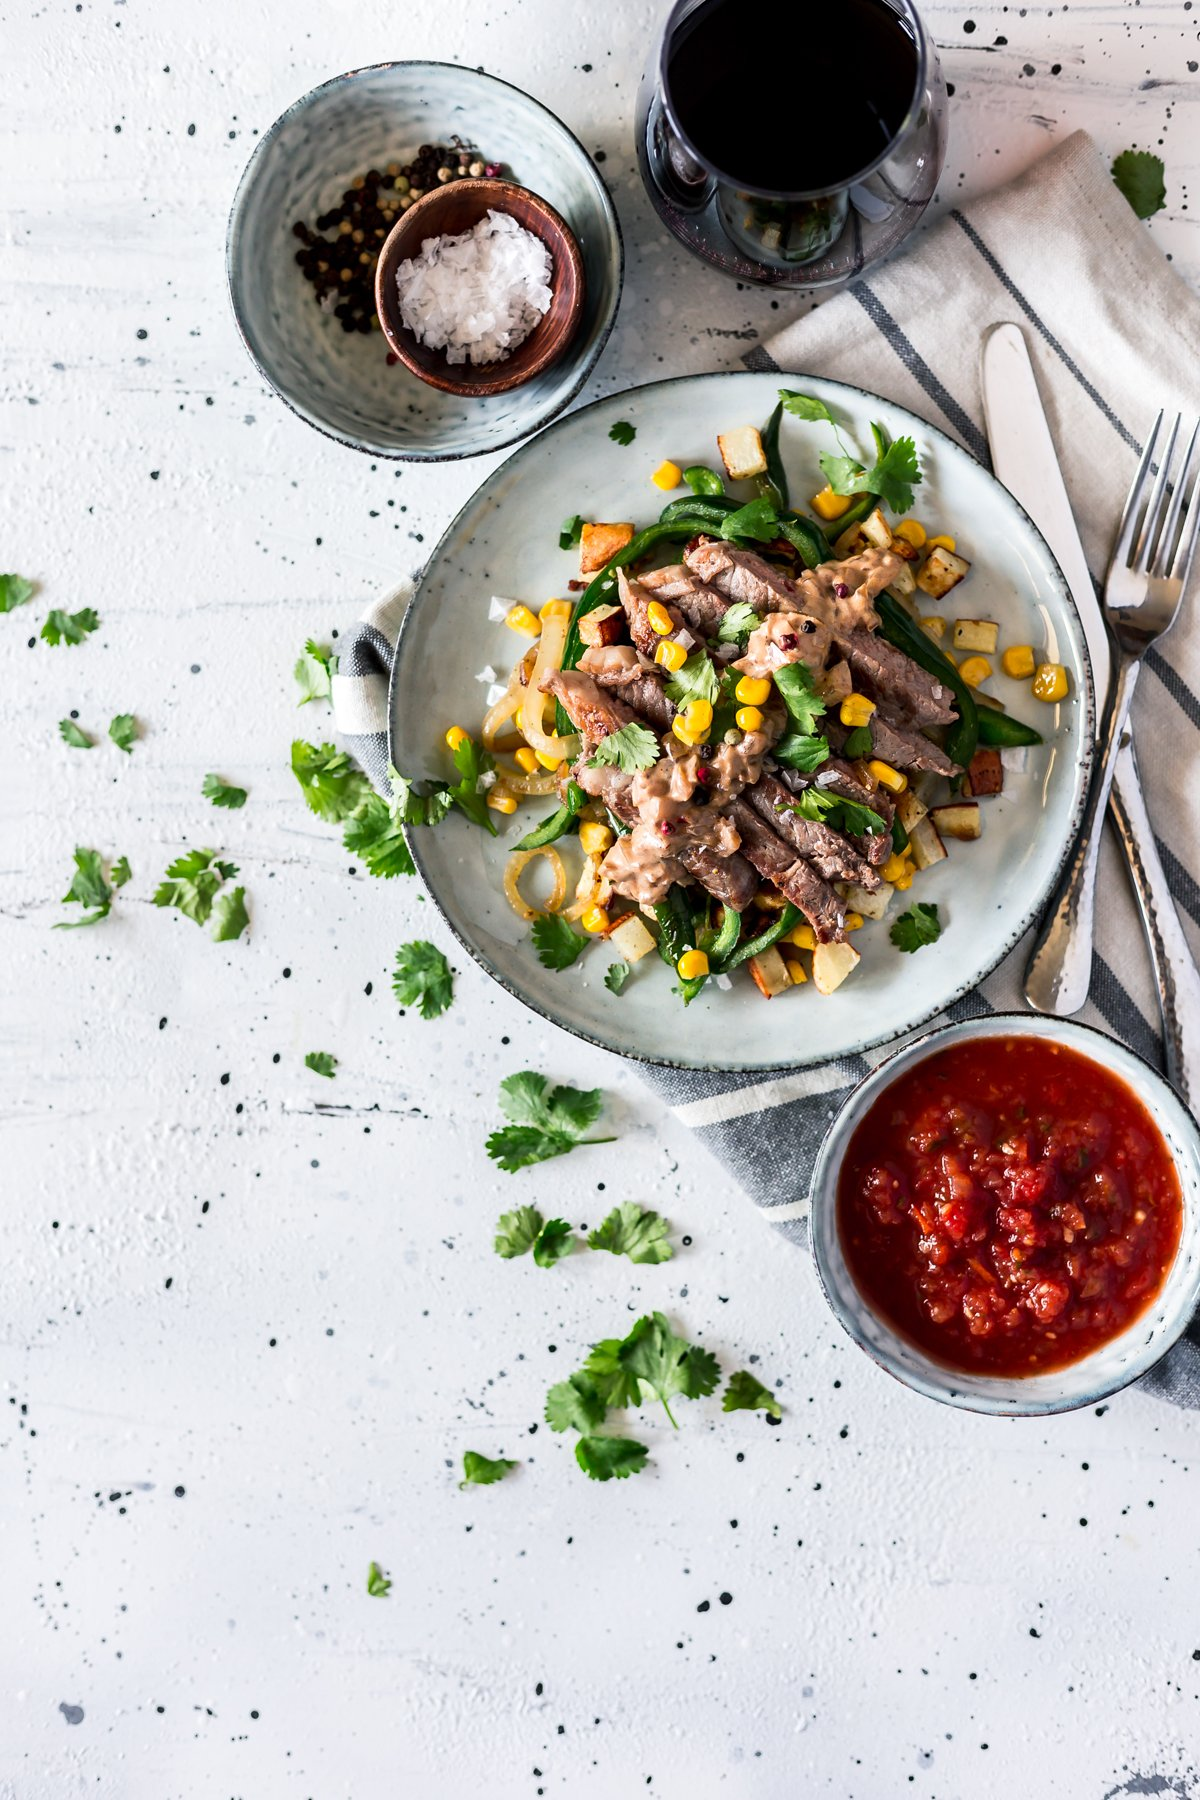 Get your summer grilling on with easy Mexican recipes like this Seared Steak with Corn, Poblano, and Roasted Potato Hash! Dinner is served. | asimplepantry.com